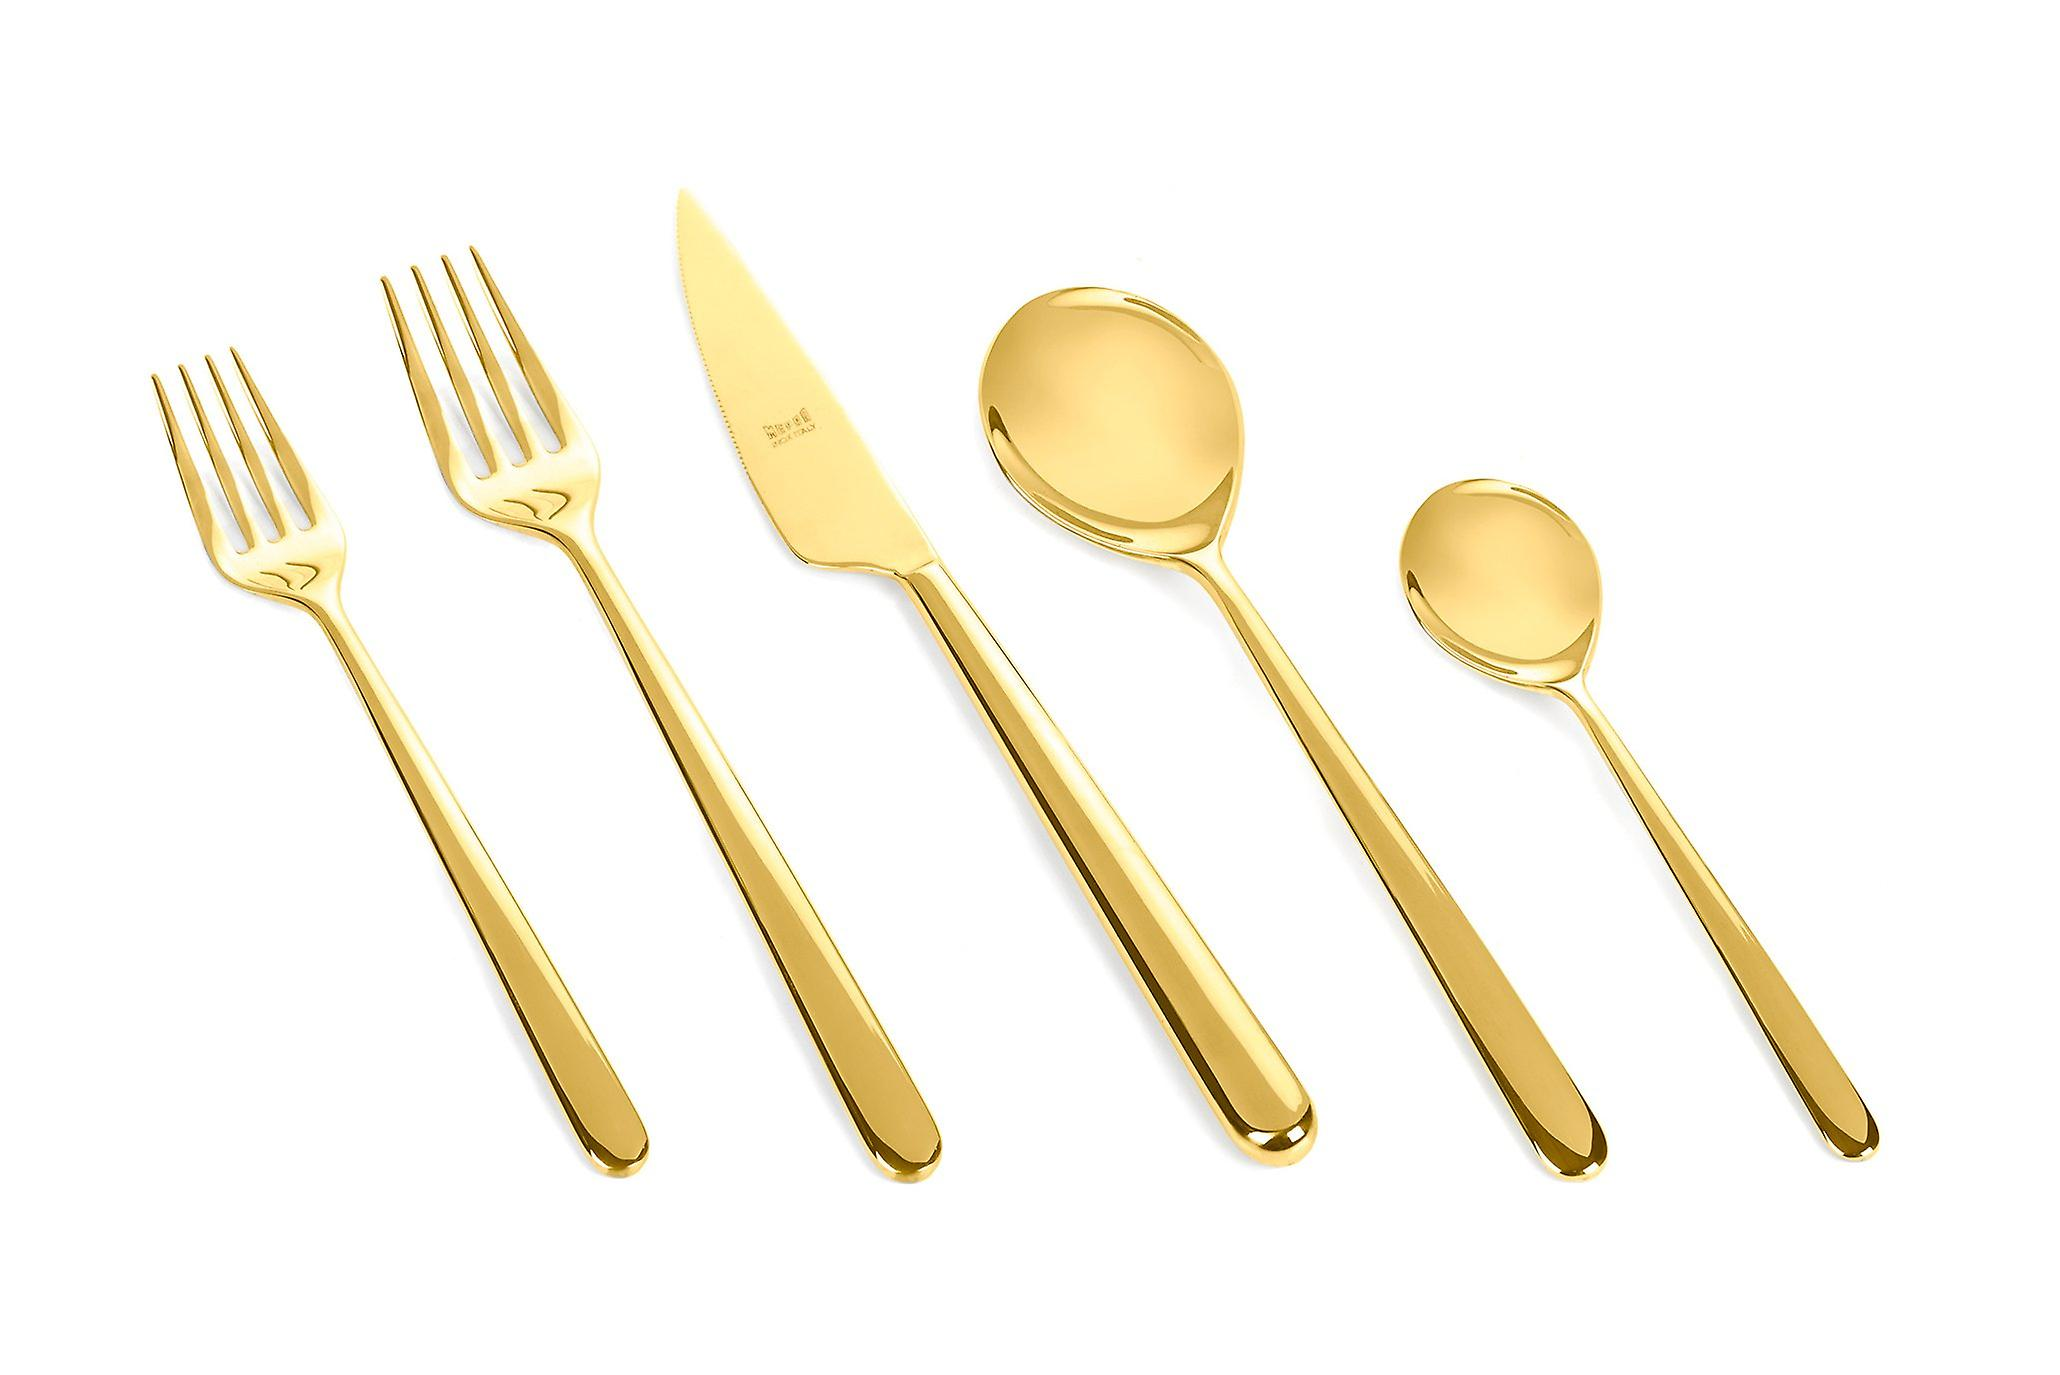 Mepra Linea Oro 5 pcs flatware set